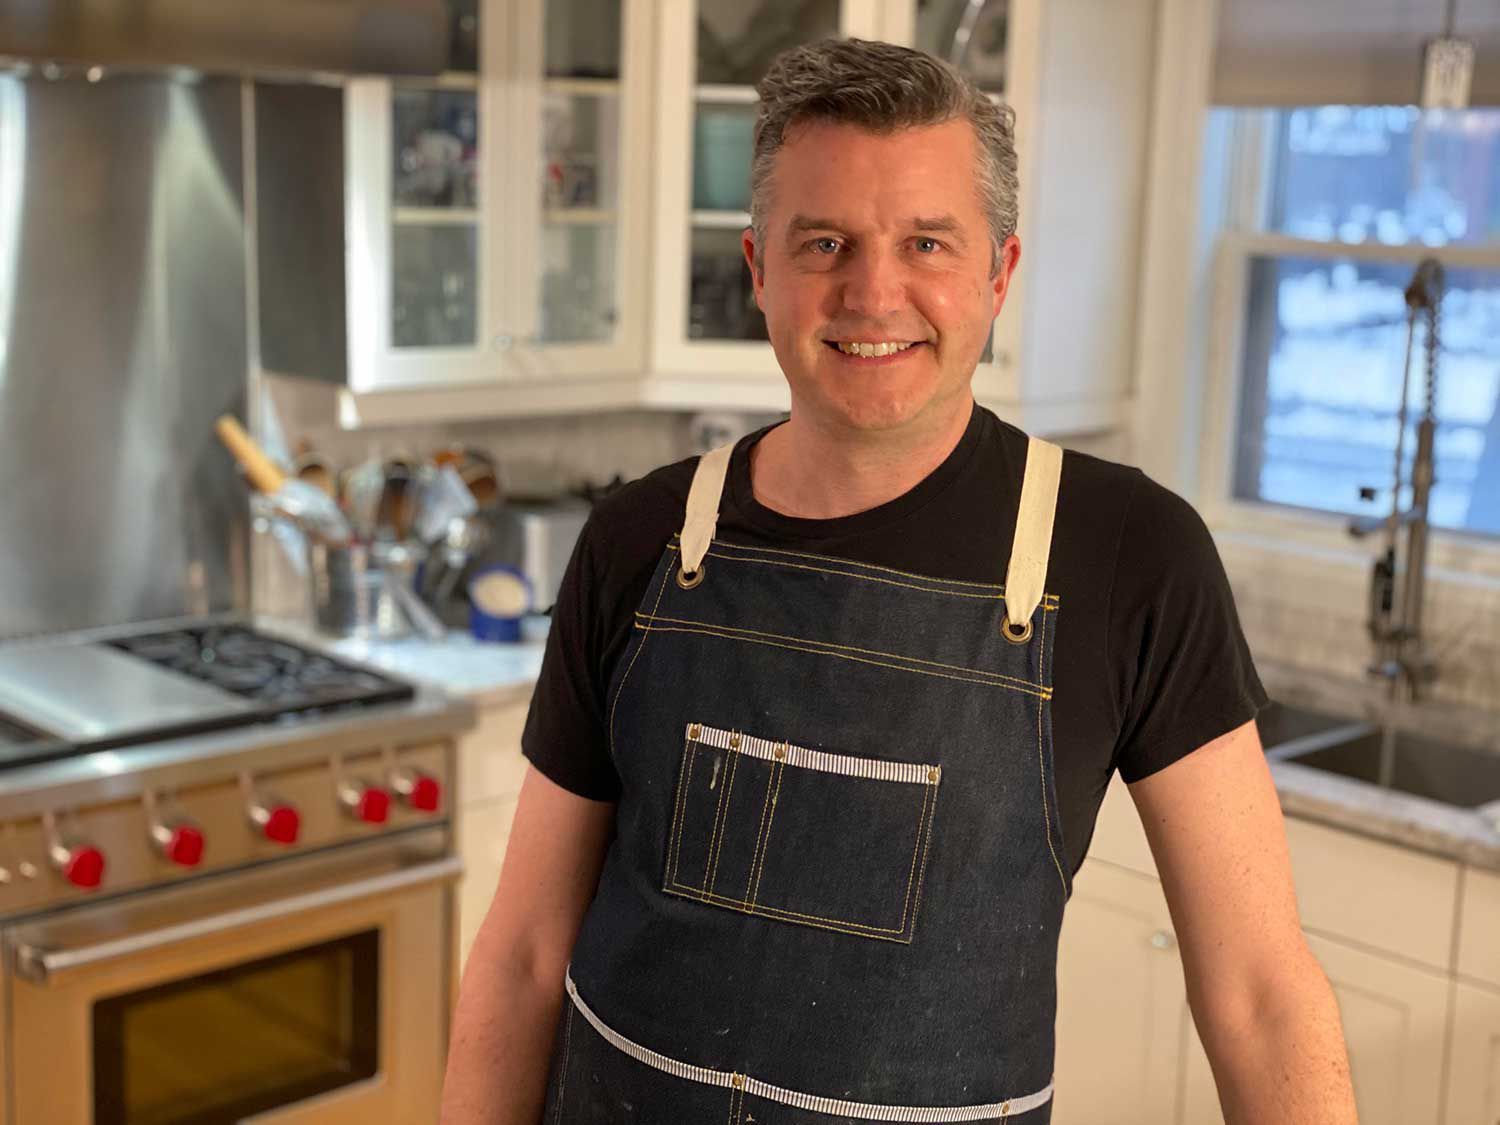 """As of press time, Robert Nelson has made 4,010 <em>Saveur</em> recipes, which he often reviews on our site. Look for his concise and to-the-point comments on recipes throughout <a href=""""https://www.saveur.com/"""">Saveur.com</a>."""